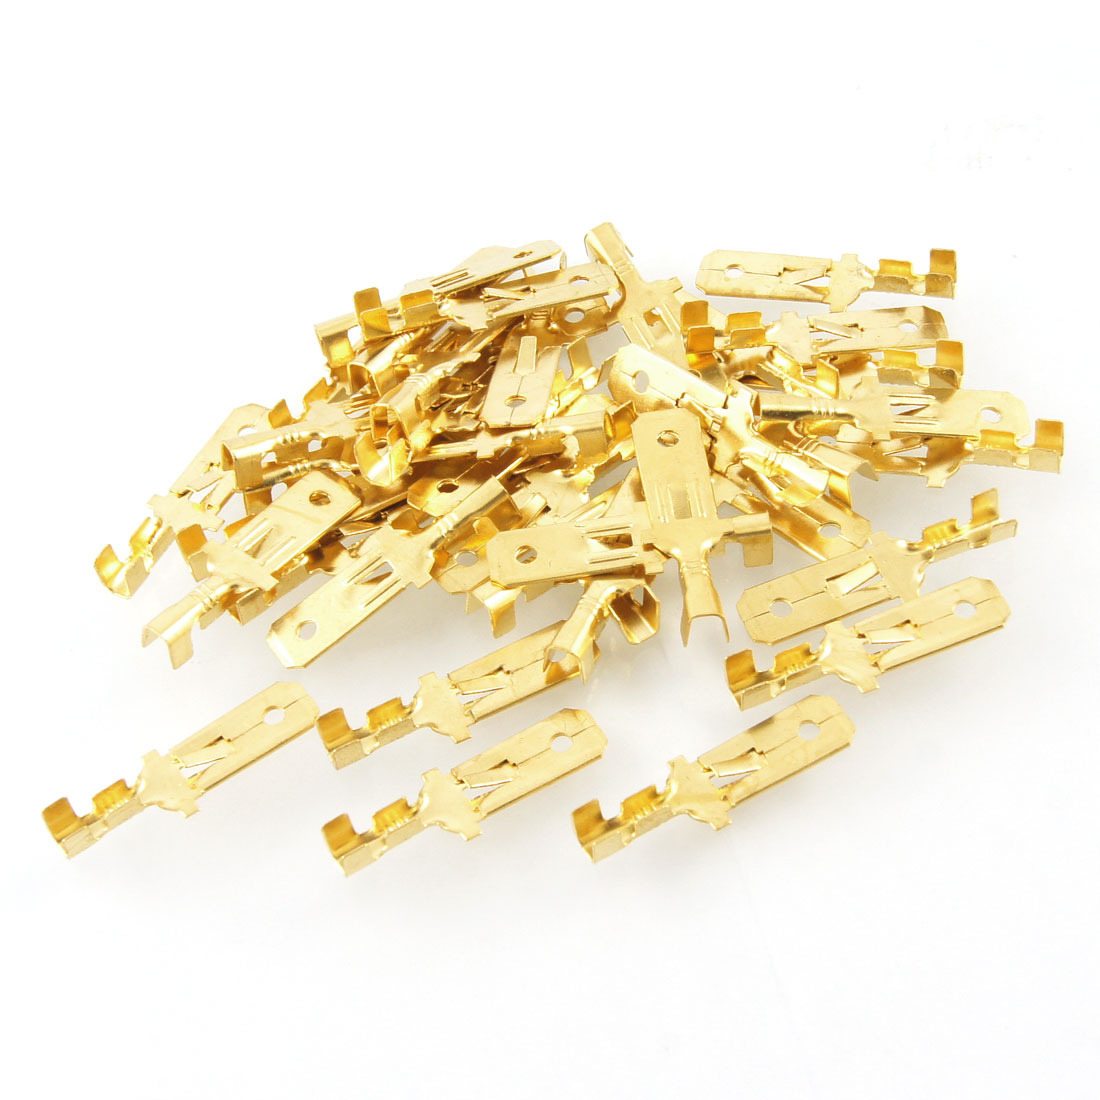 40 Pcs Gold Tone Male Spade Crimp Terminals 25mm Long Wiring Connectors